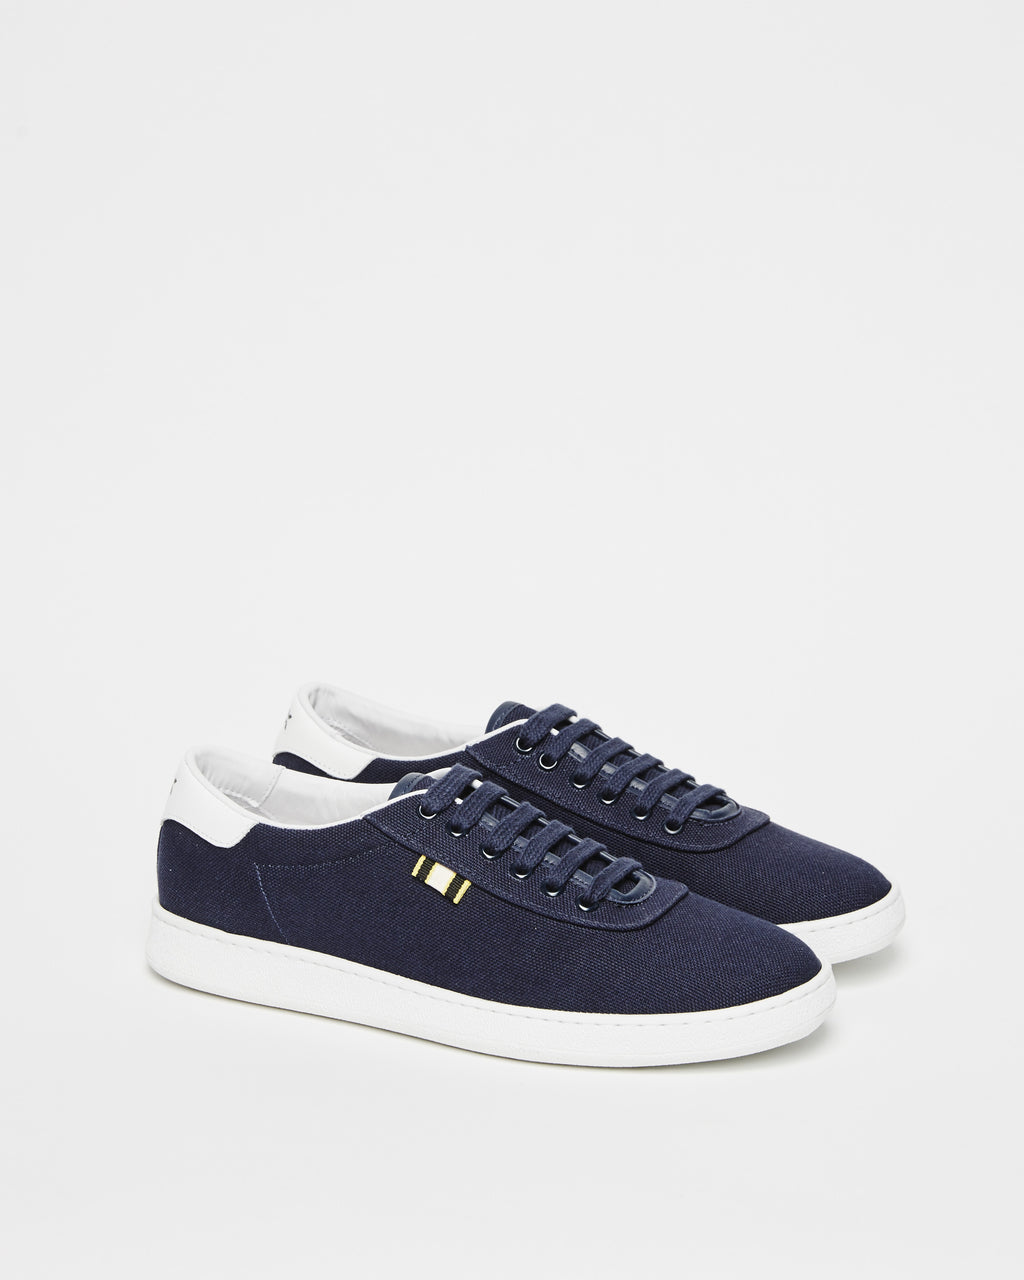 APR003 - Canvas - Navy / White